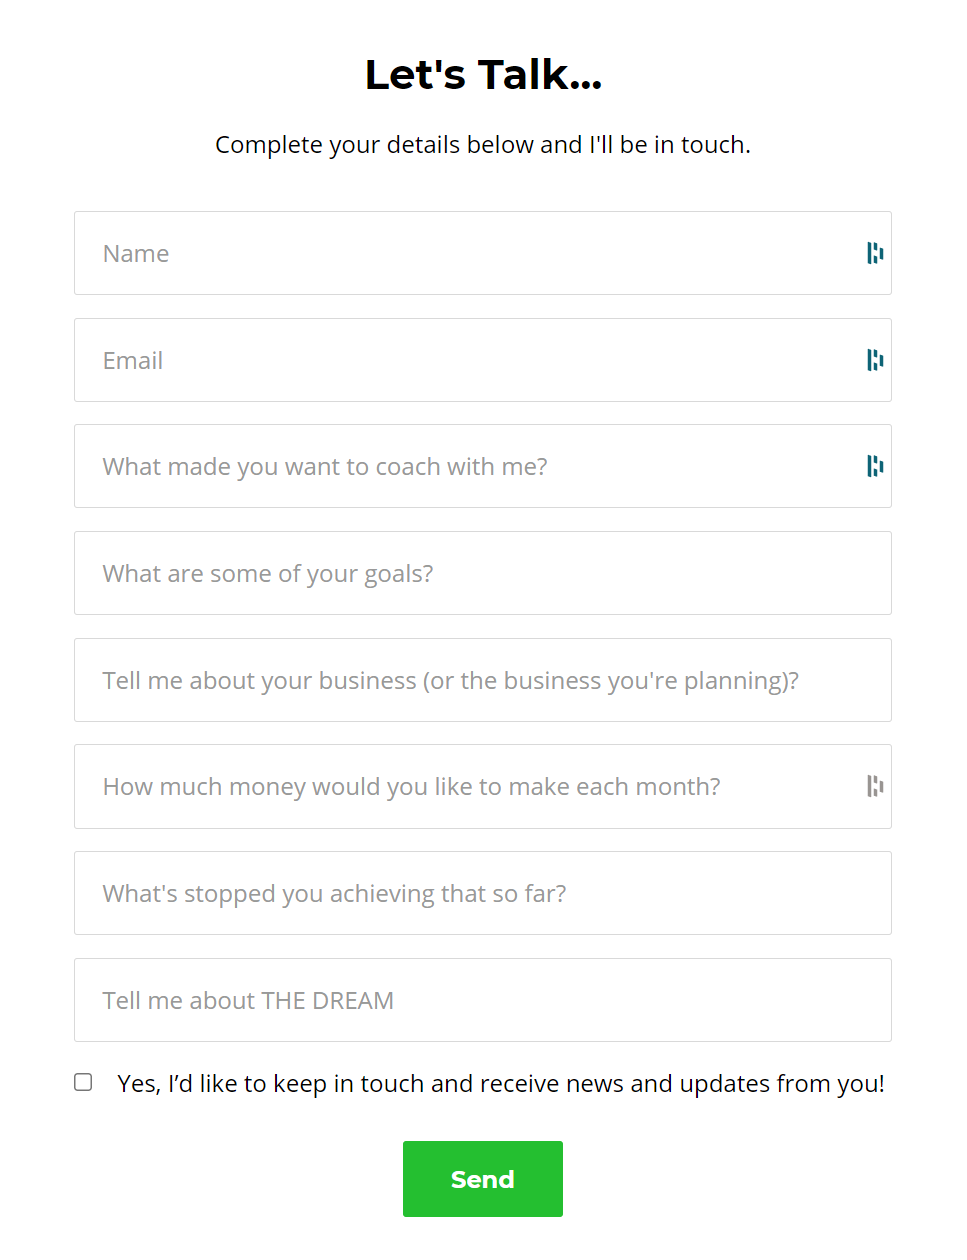 Screenshot of a client intake form with 8 fields diving into the clients' needs and goals